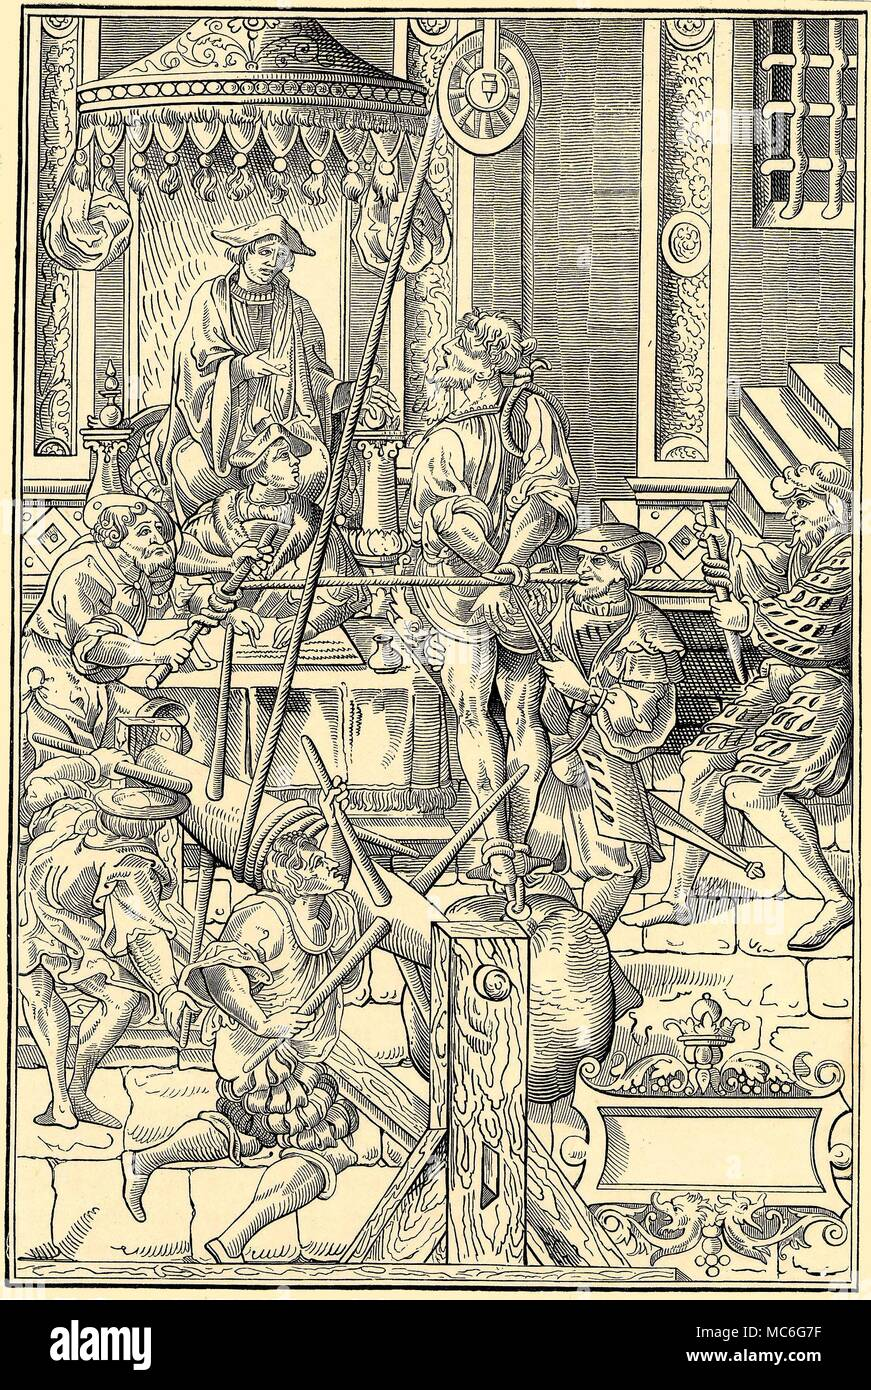 TORTURE  - ESTRAPADE An illustration of the Estrapade, or 'Question Extraordinary', used by the Inquisition on suspected heretics.  The victim is hung by  one shoulder, with heavy weights tied to his feet:  usually his shoulder is rapidly dislocated.  His hands, tied behind his back by rope, is subjected to a cruel tourniquet, which squeezes blood from his fingers.  After a facsimile of a woodcut in J. Millaeus, Praxis Criminalis Persequendi, 1541. - Stock Image